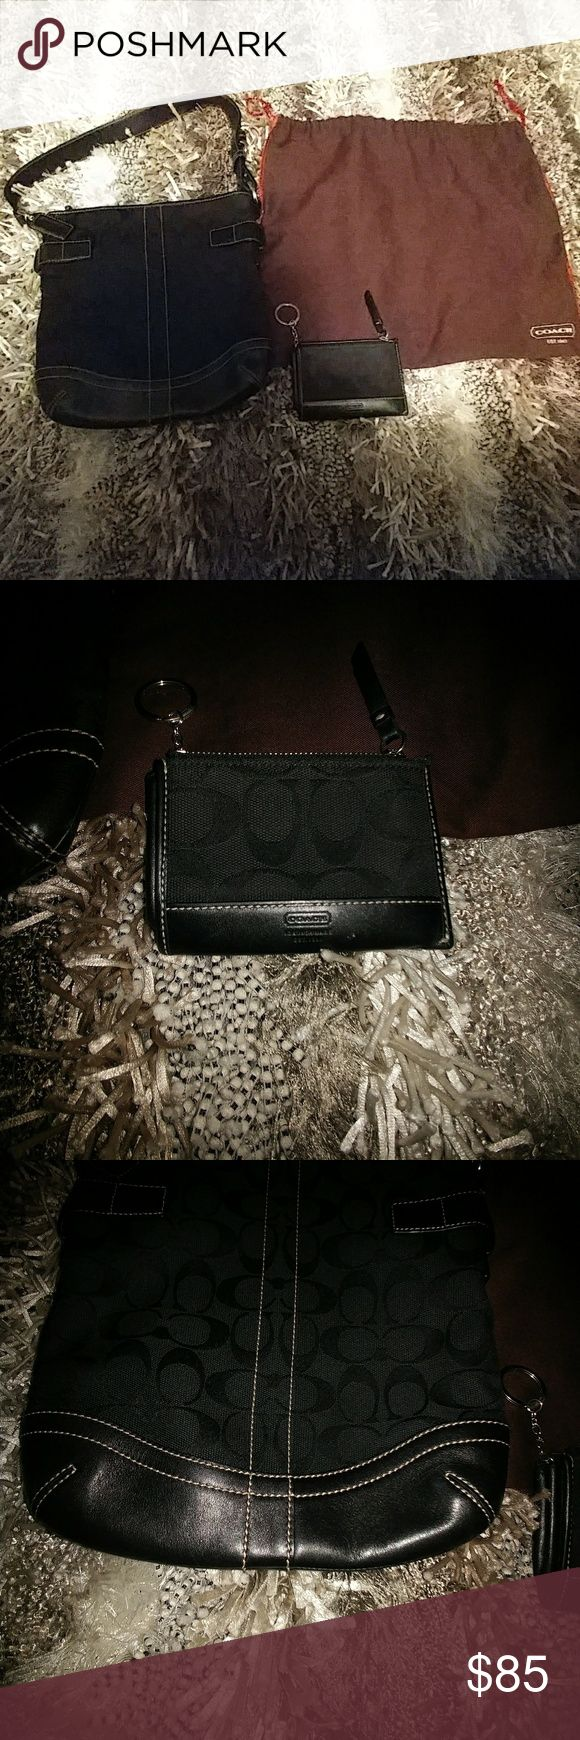 🔥🔥New Item Aleart!! Coach Hobo w/wallet keychain Black Signature Coach Hobo bag with matching keychain wallet. Comes with dust bag. Coach Bags Hobos